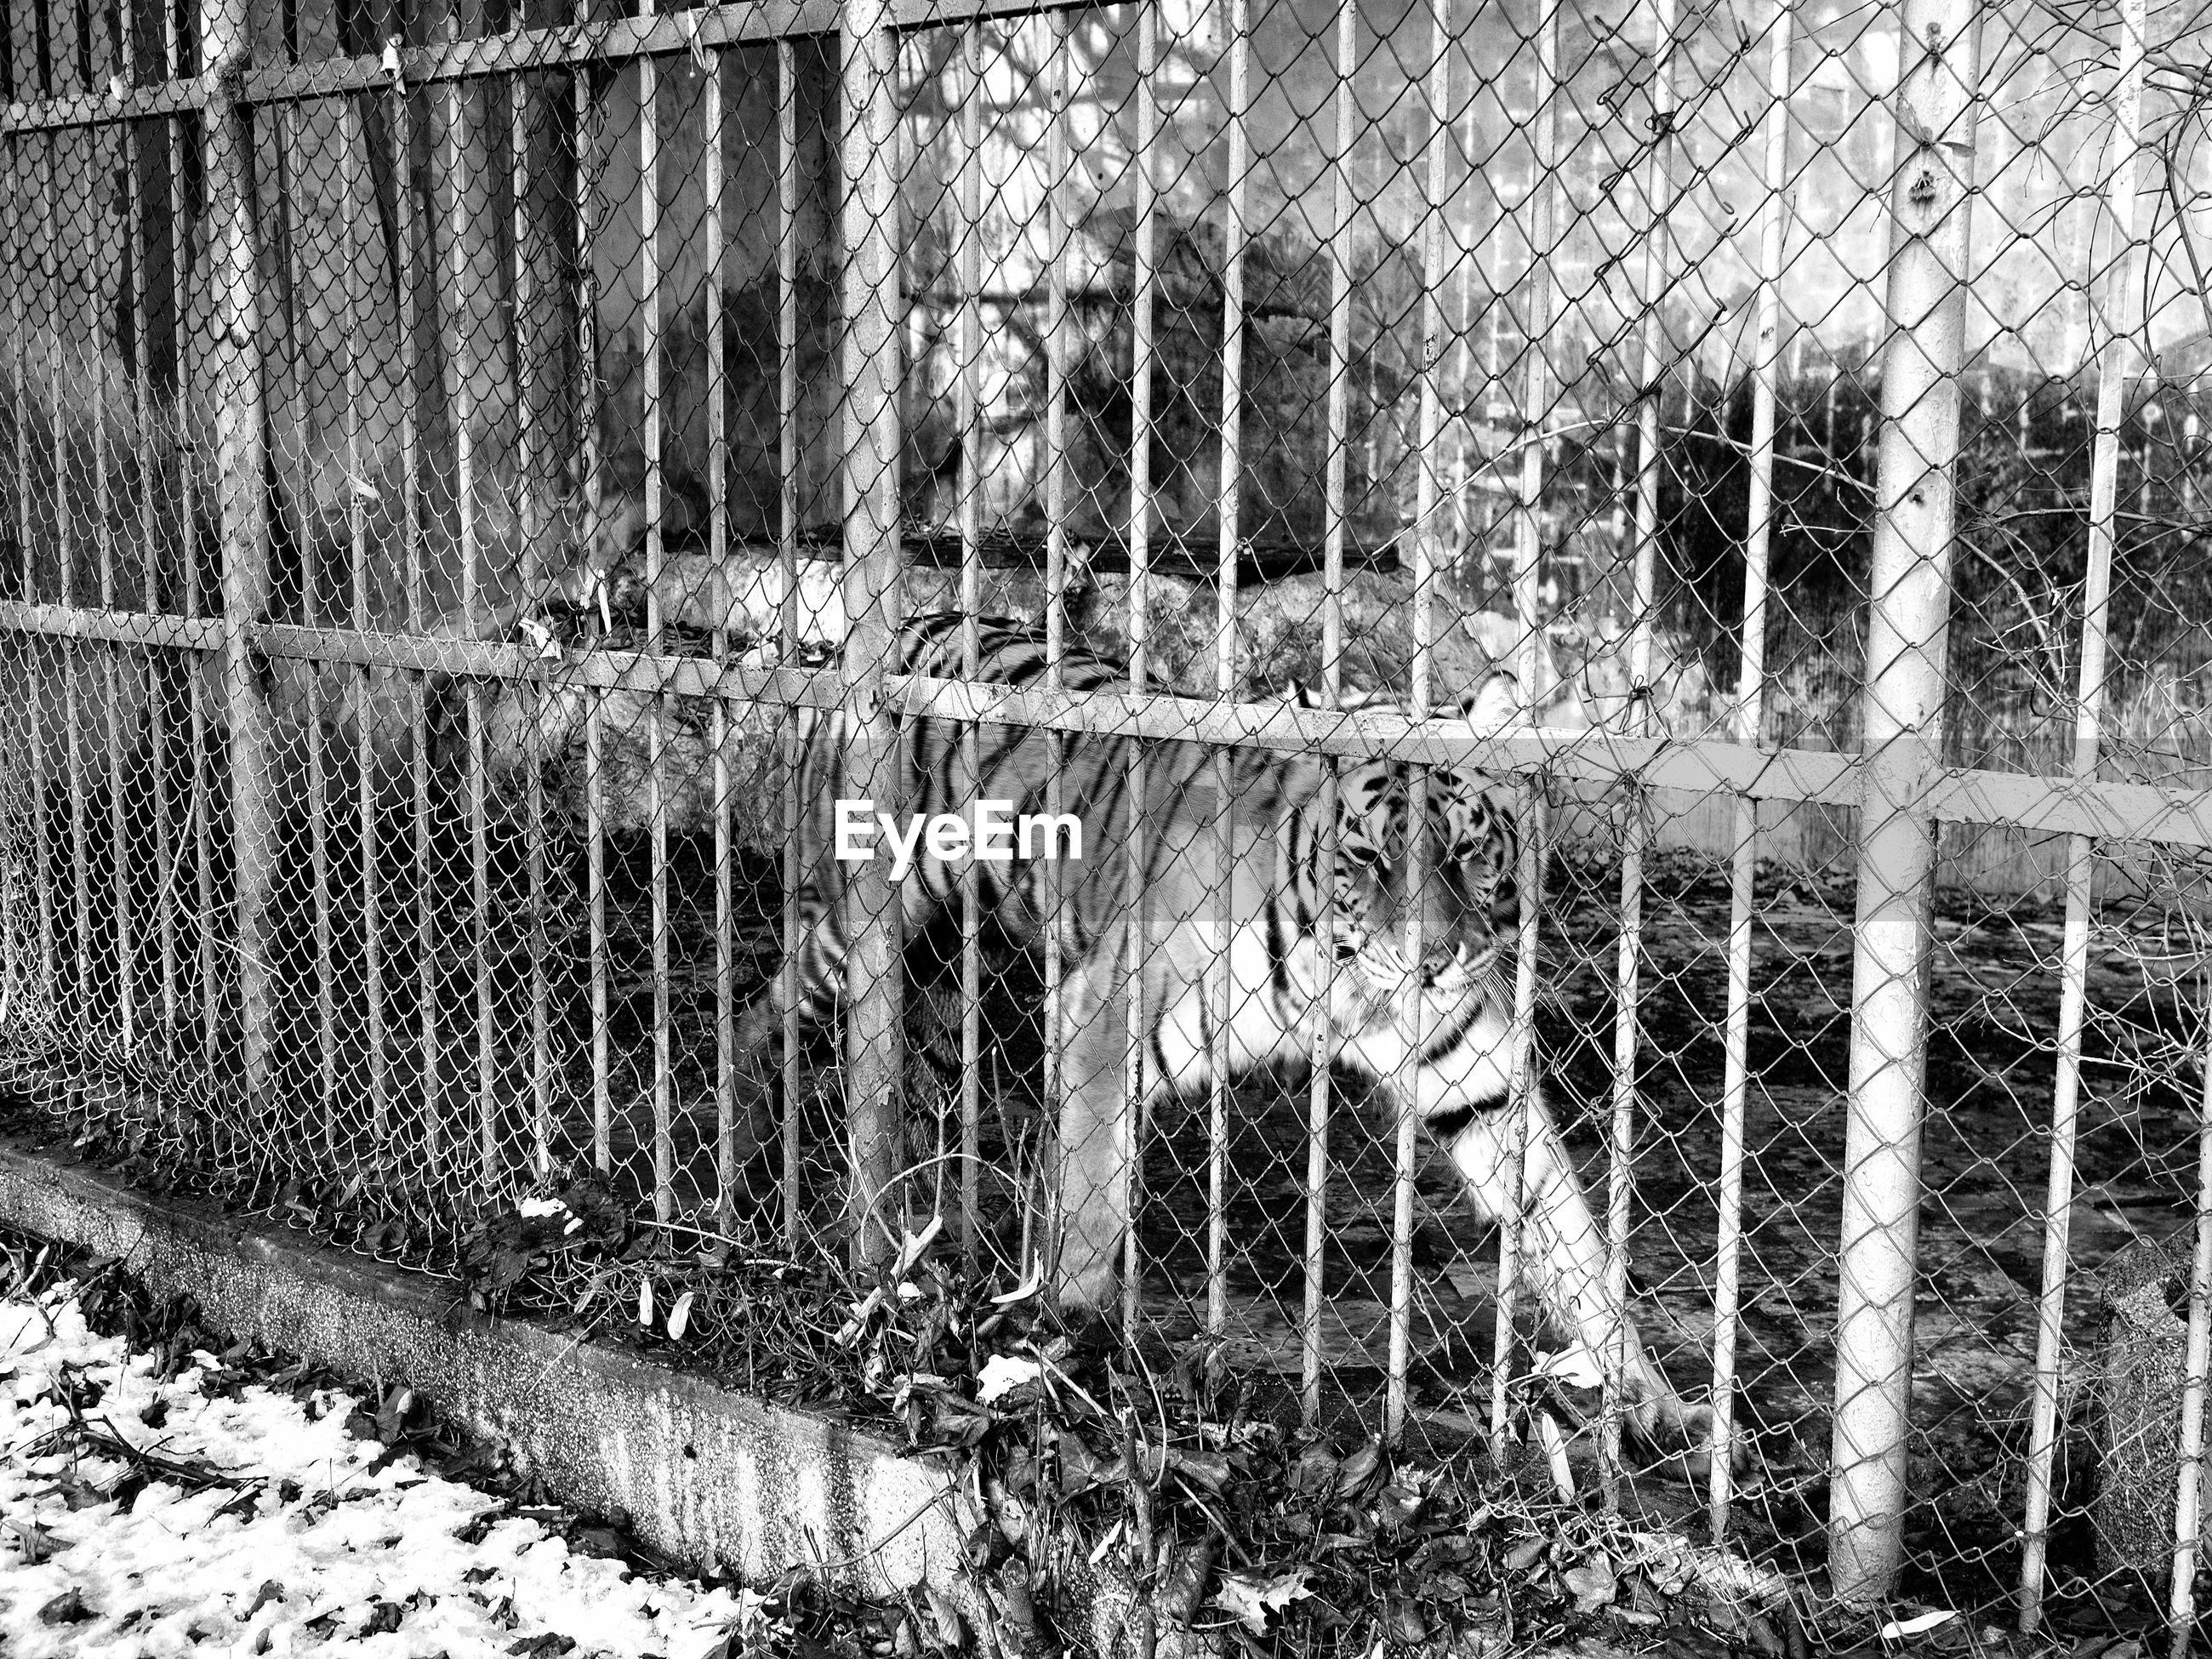 Tiger in cage at zoo